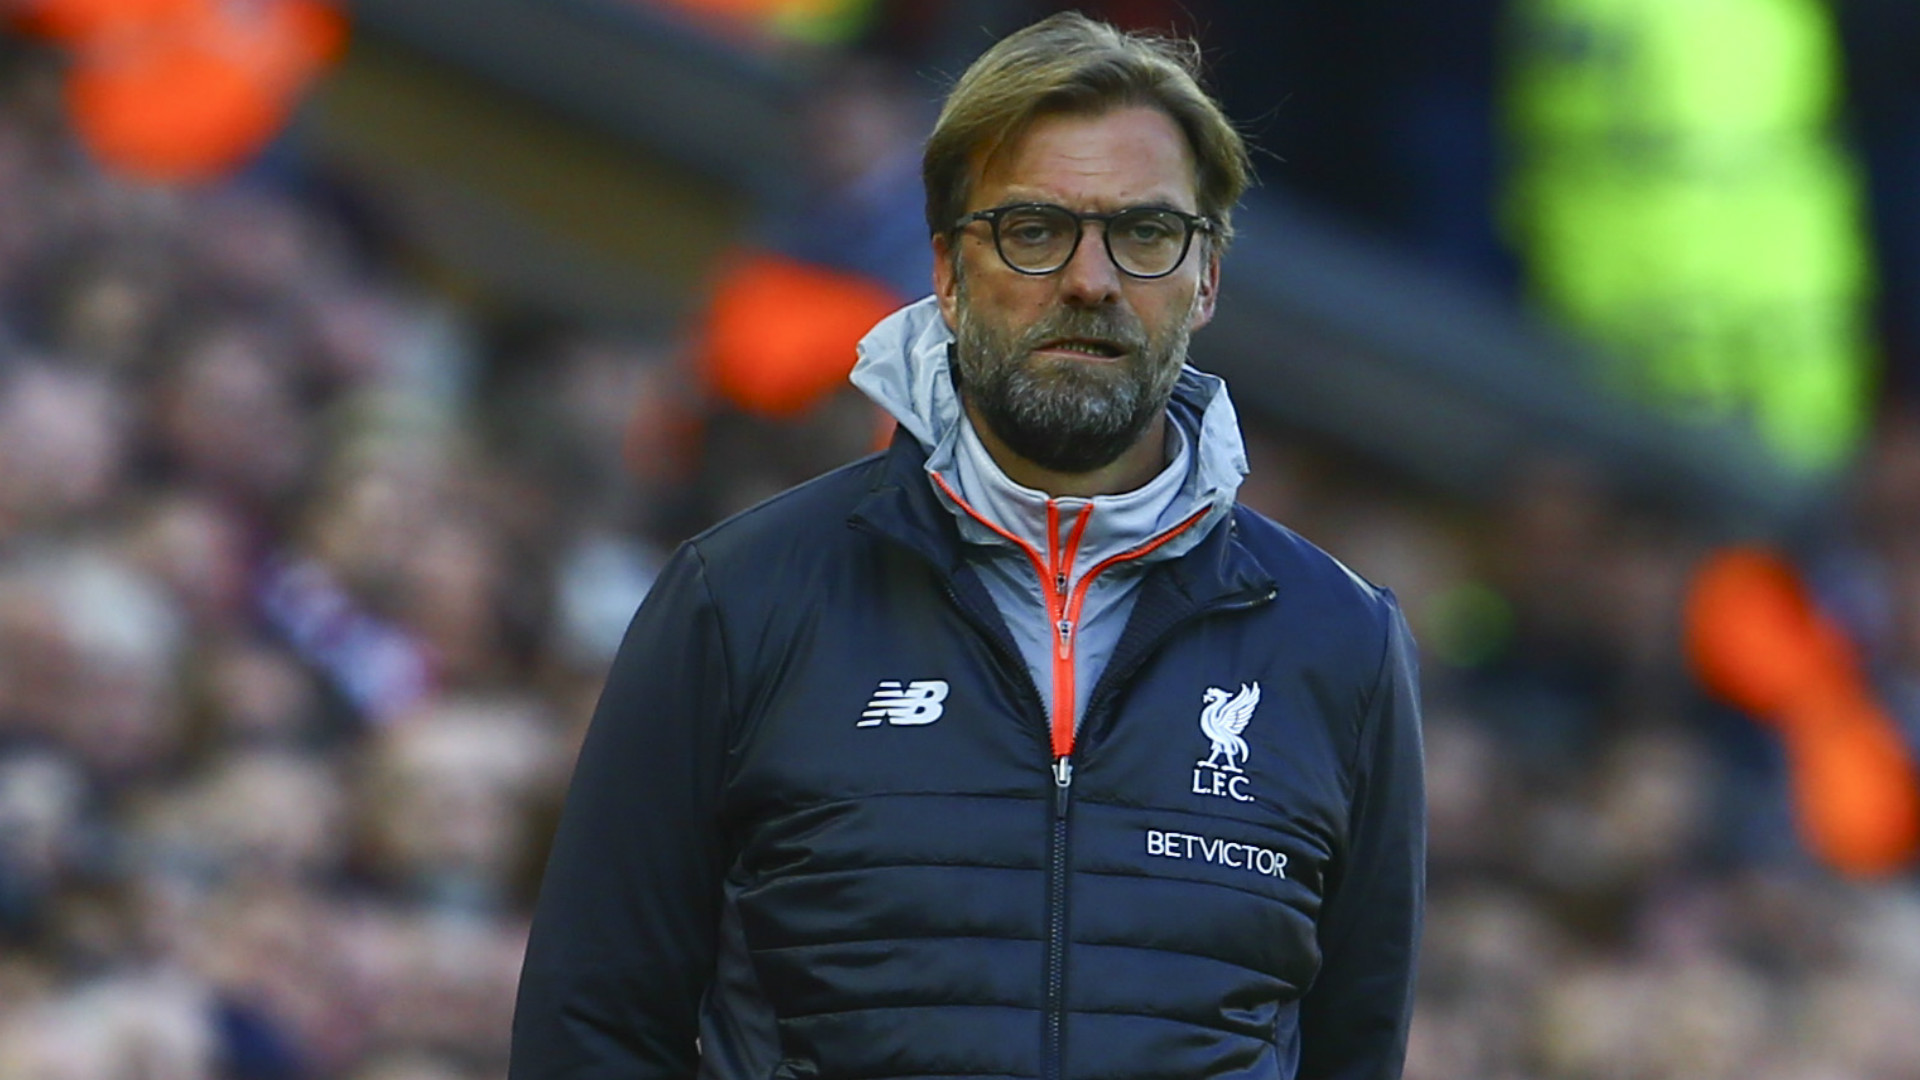 Liverpool Betting: Expect A Low-scoring Game At